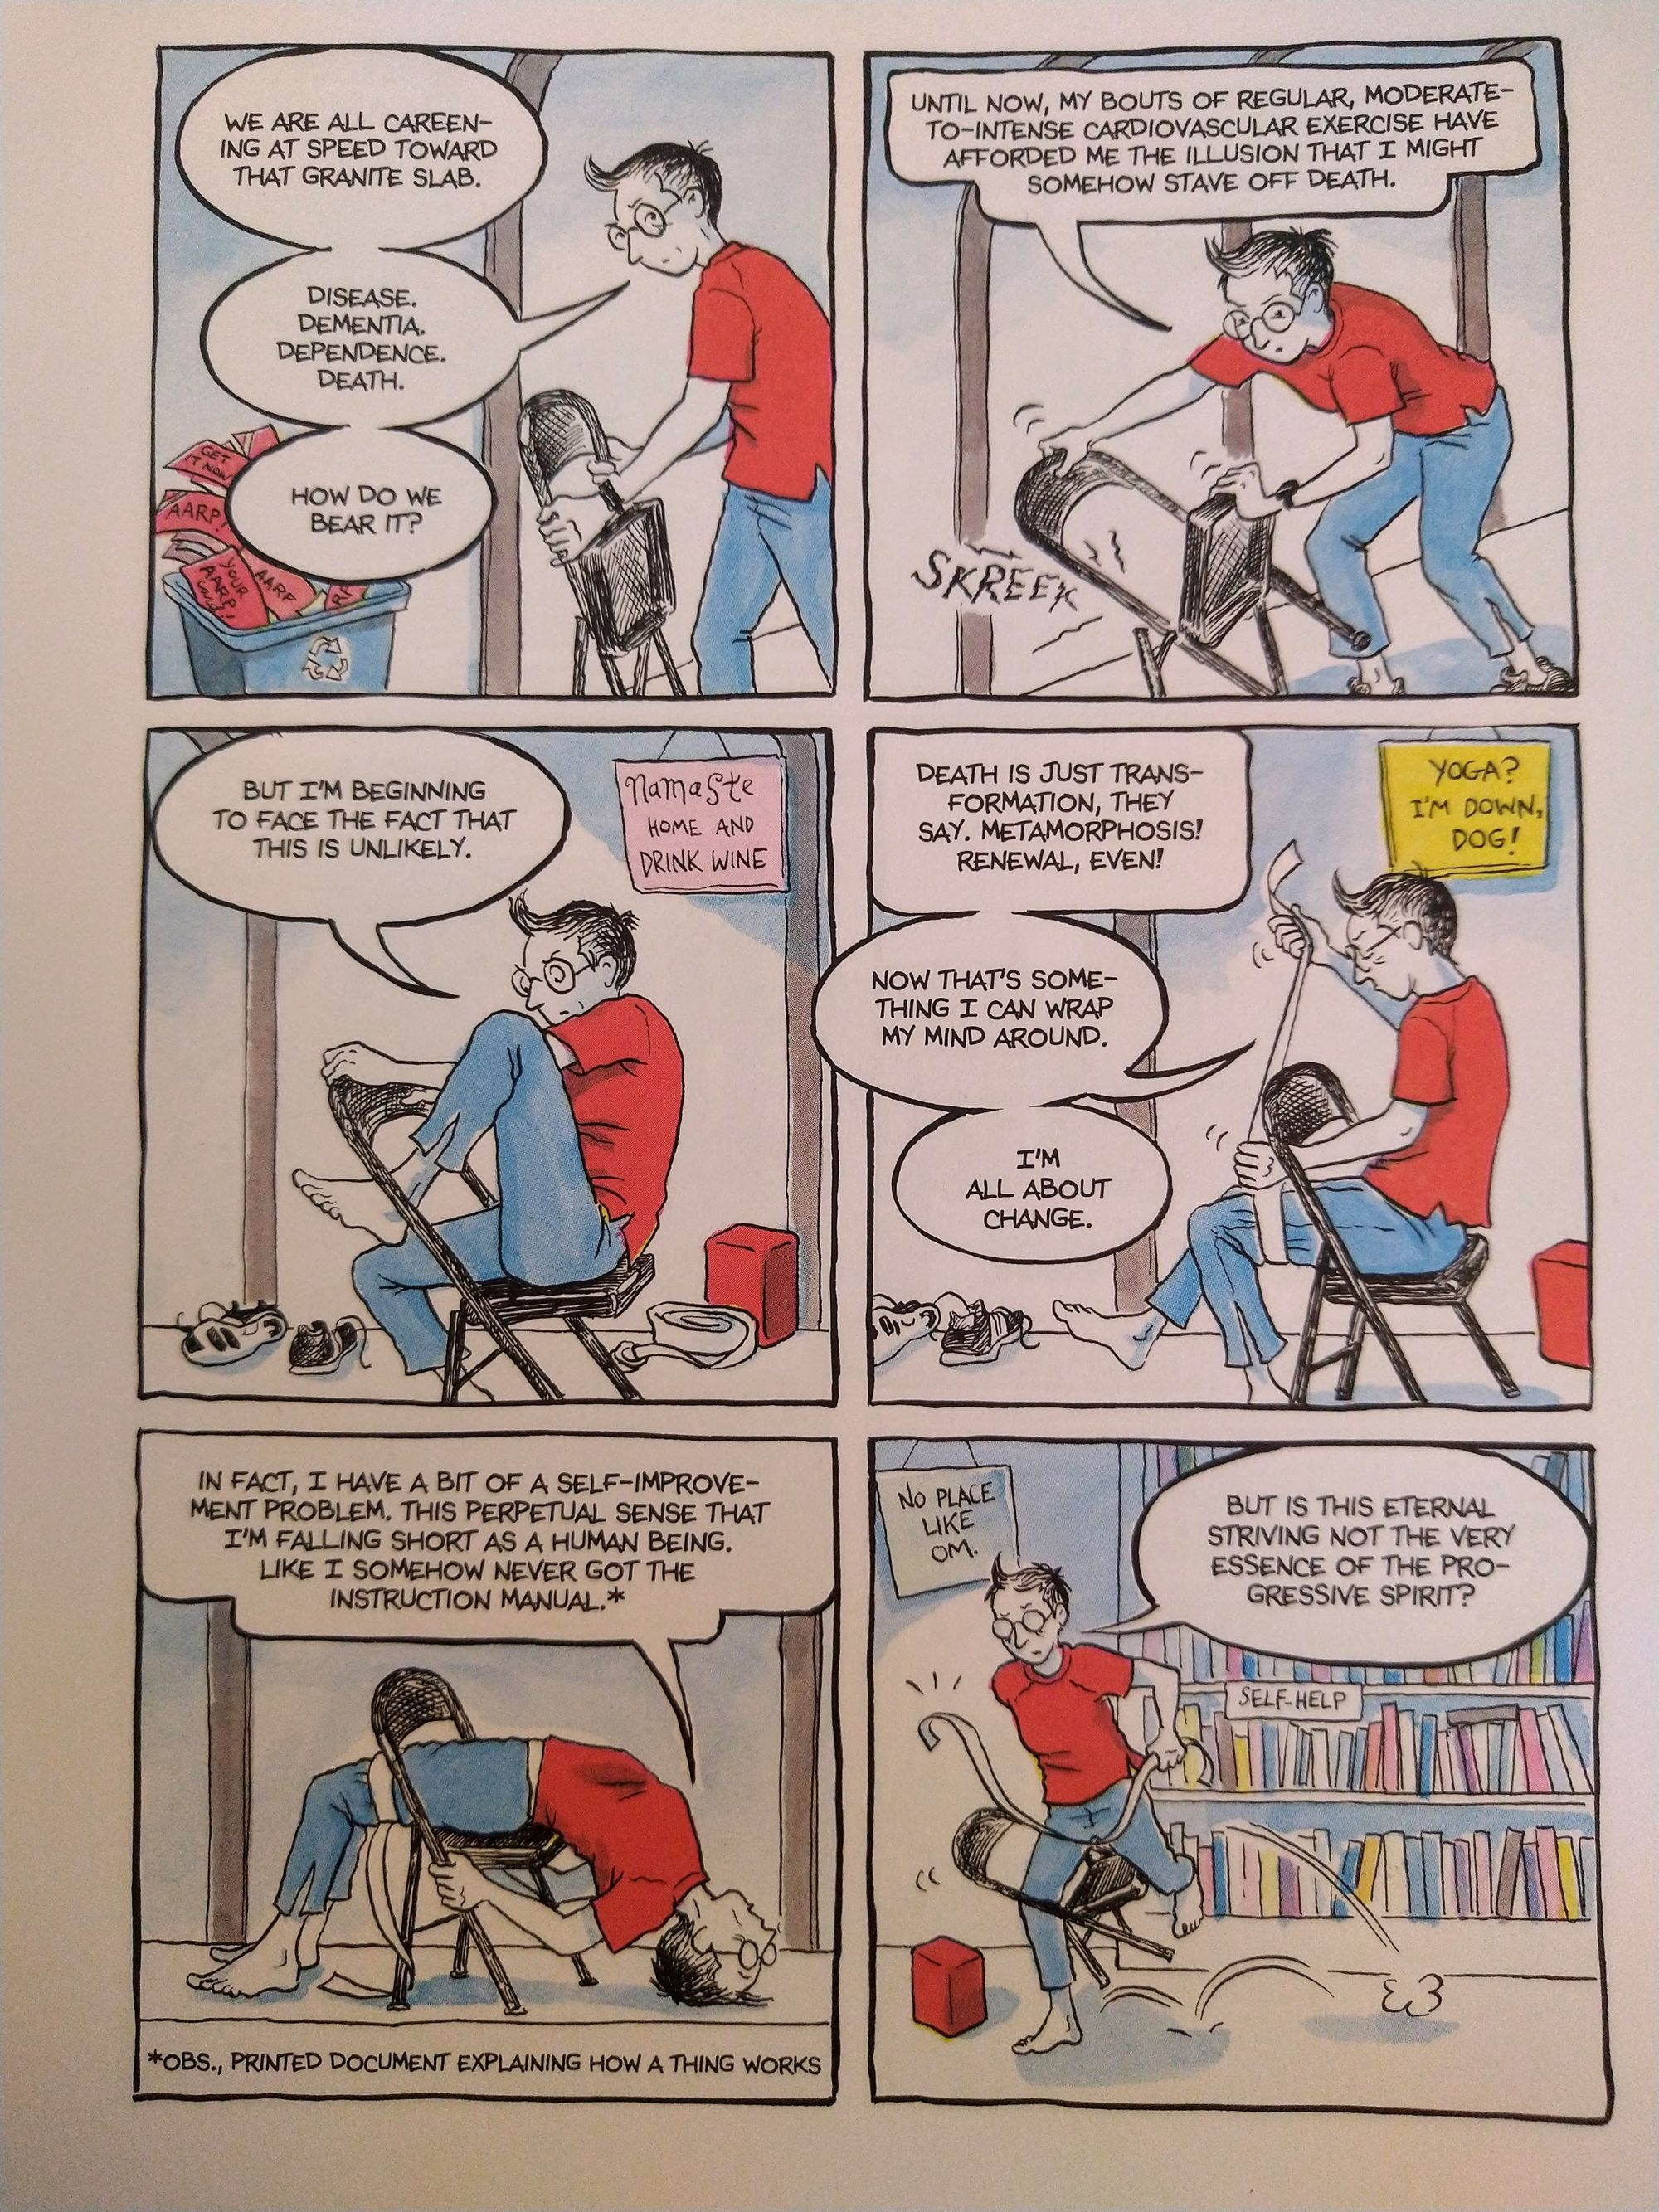 A page from Alison Bechdel's book